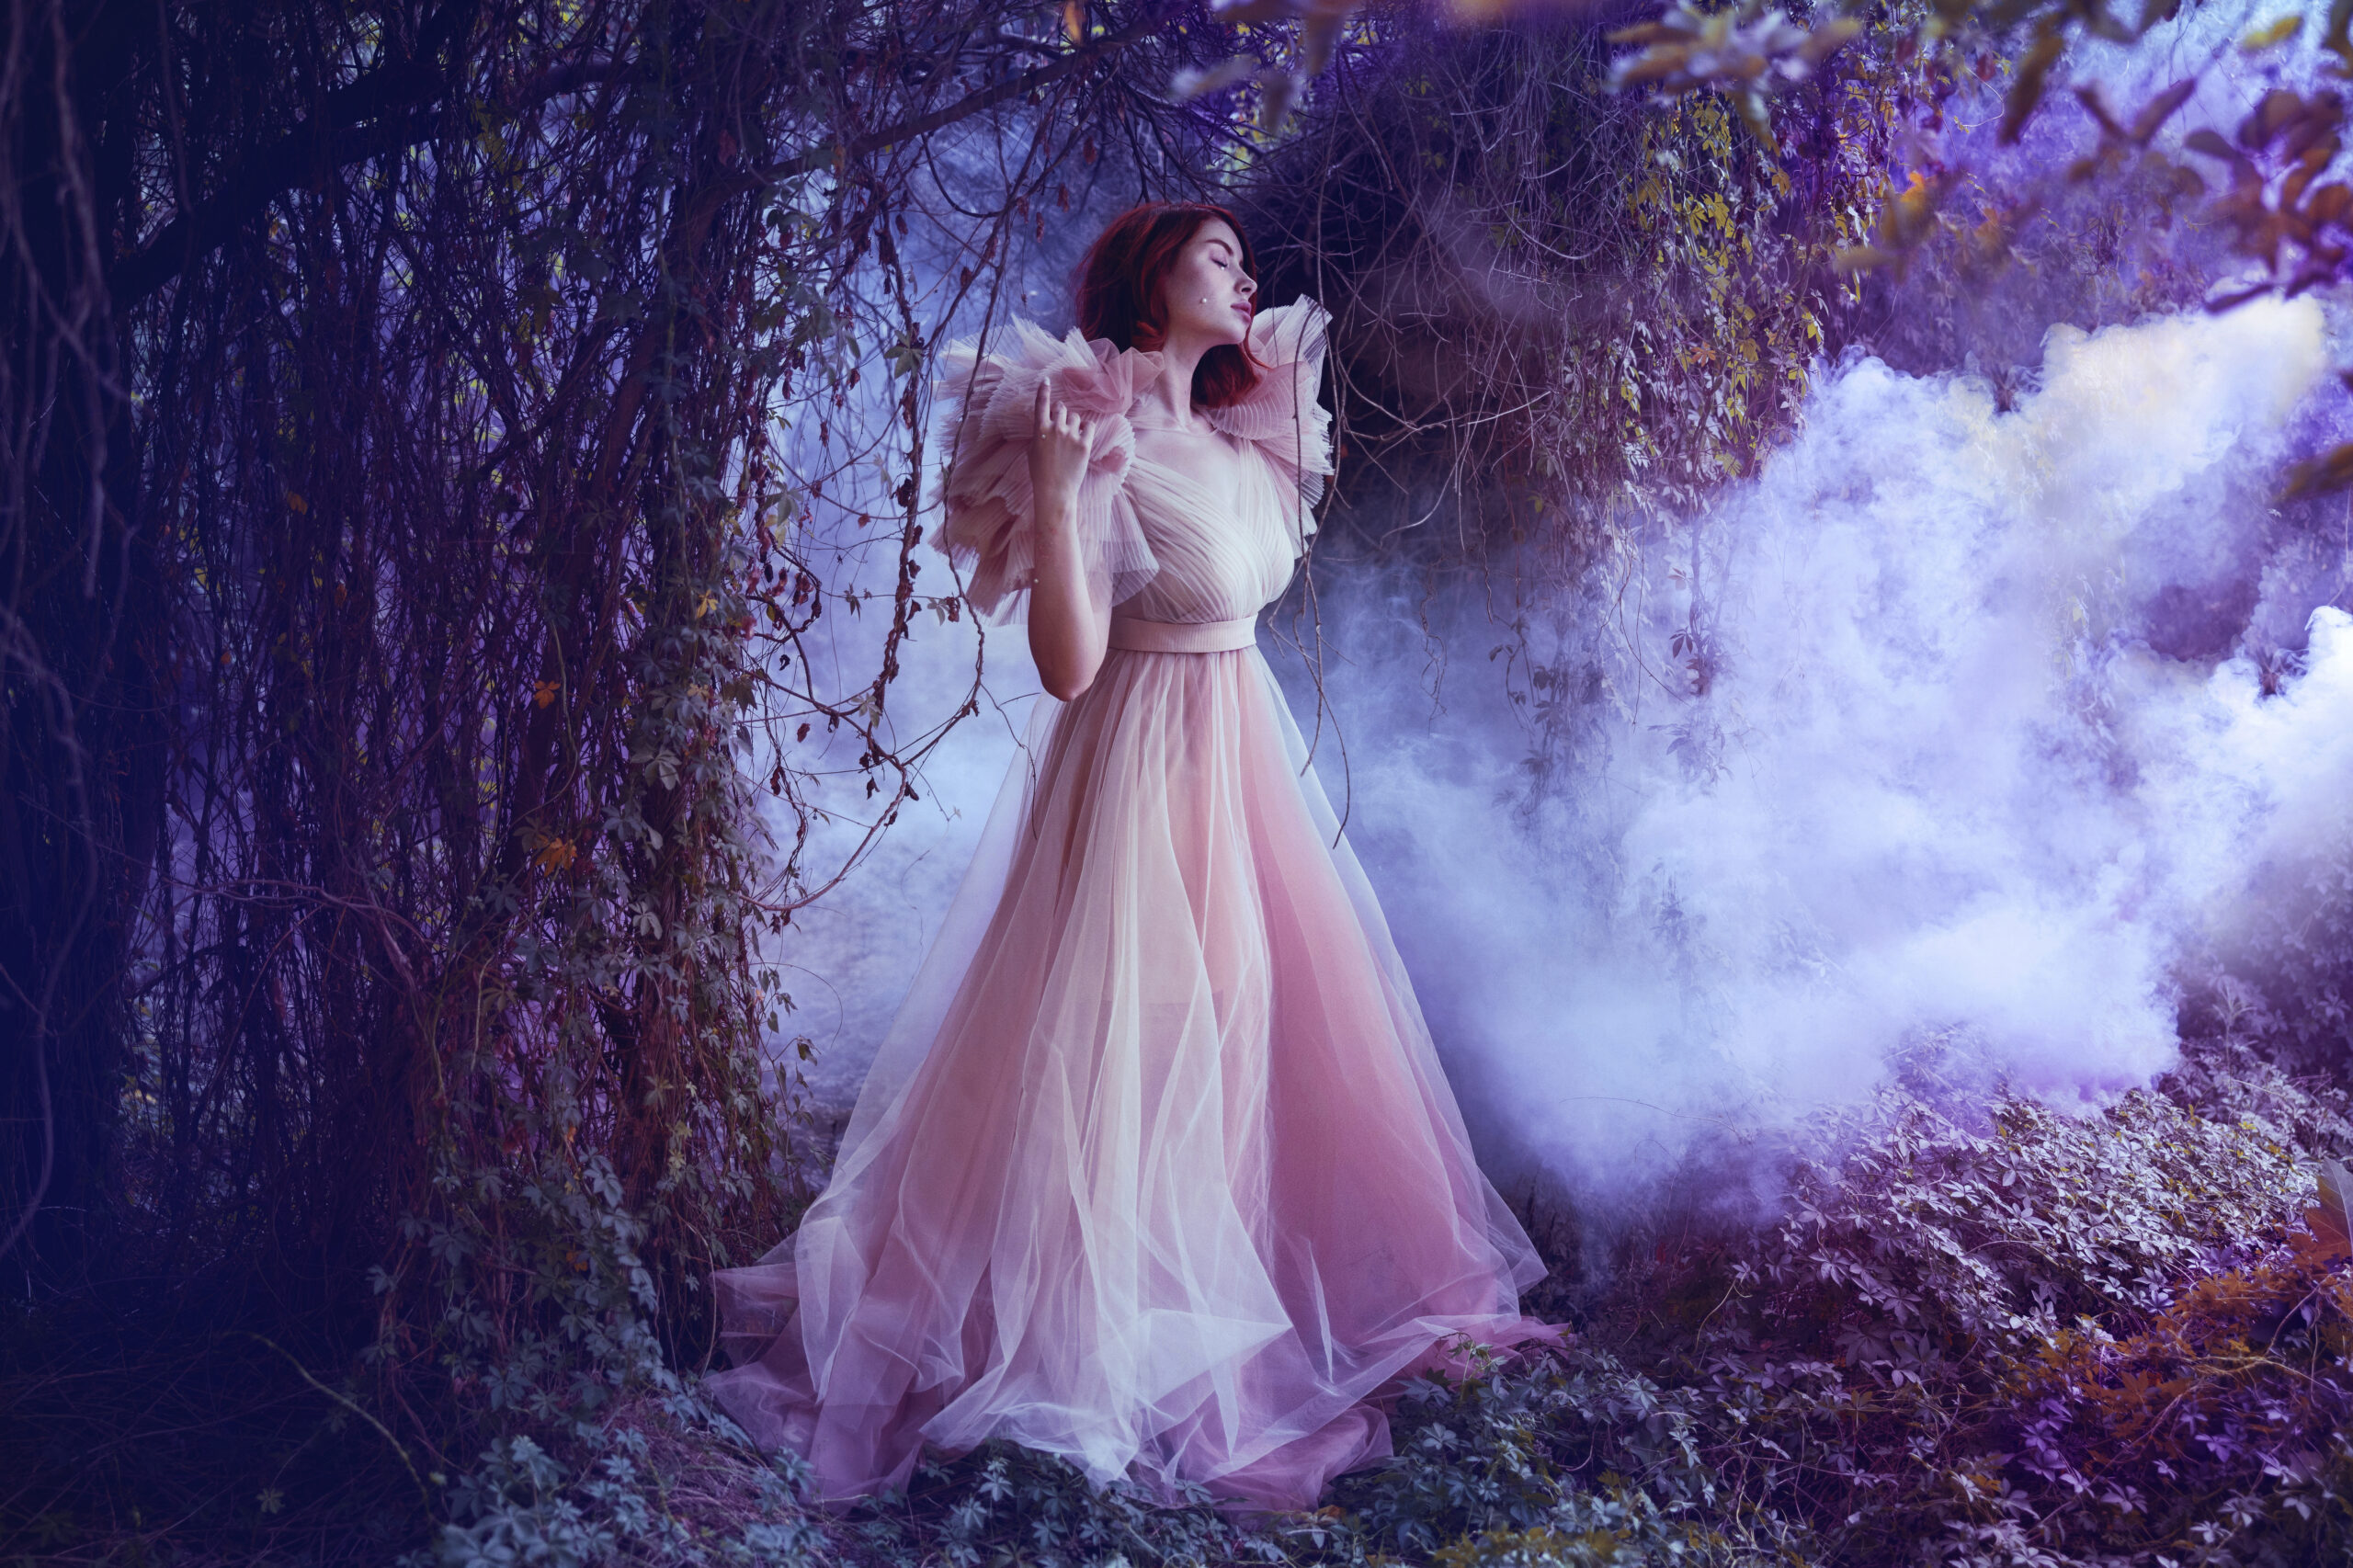 Meet Menna Hossam, the Photographer Behind the Most Enchanting Photo-Shoots You'll Ever See